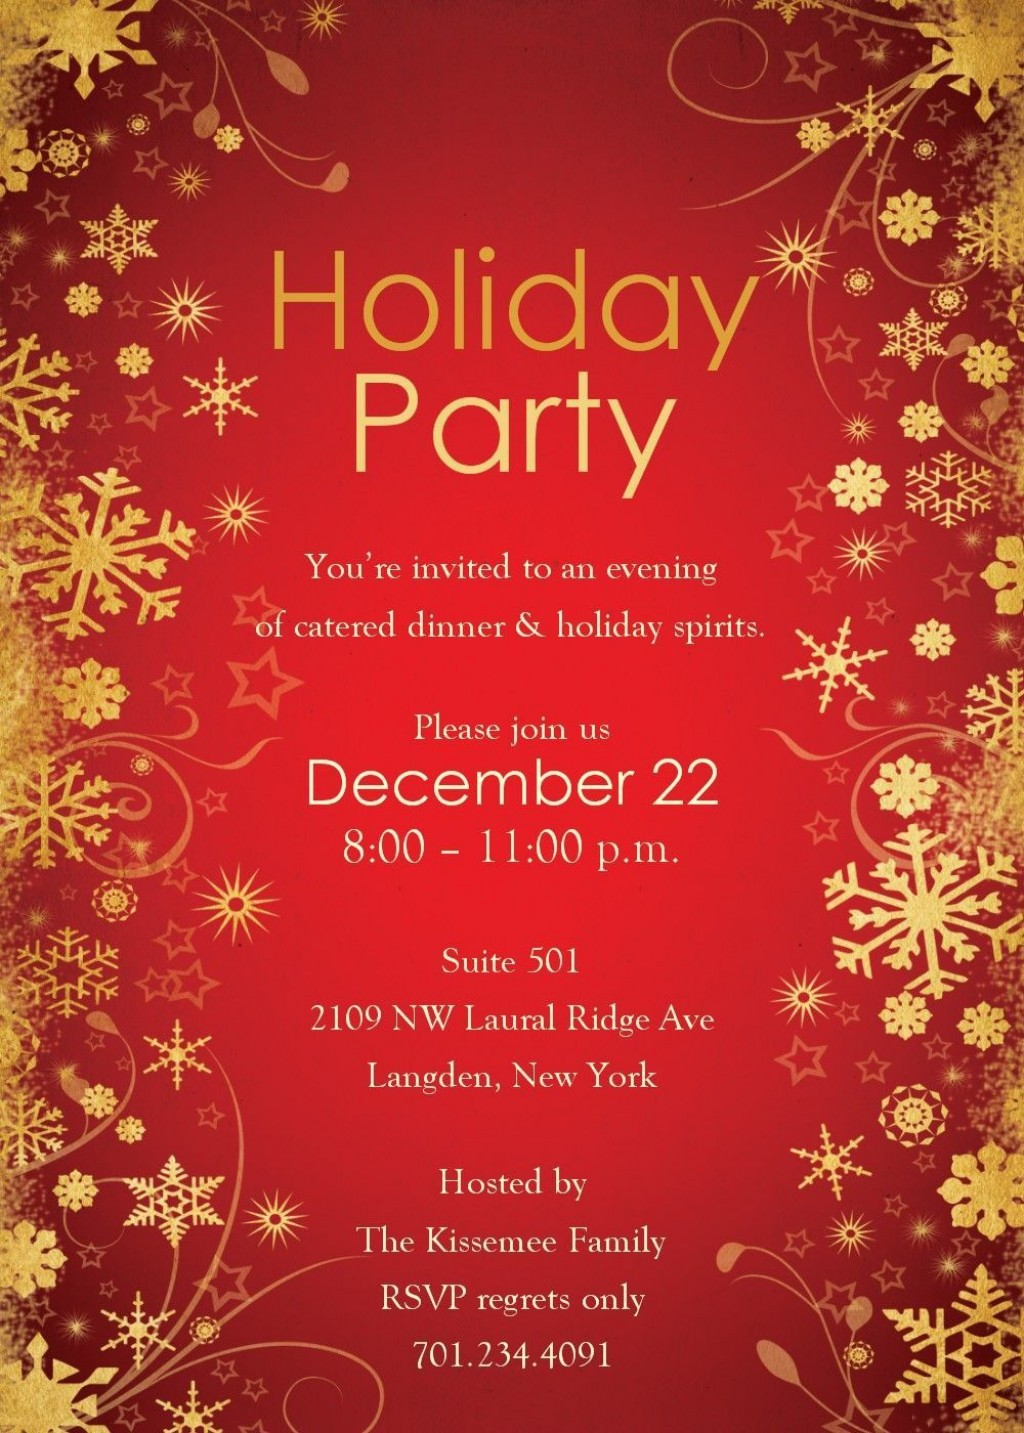 004 Fascinating Holiday Party Flyer Template Free High Resolution  OfficeLarge